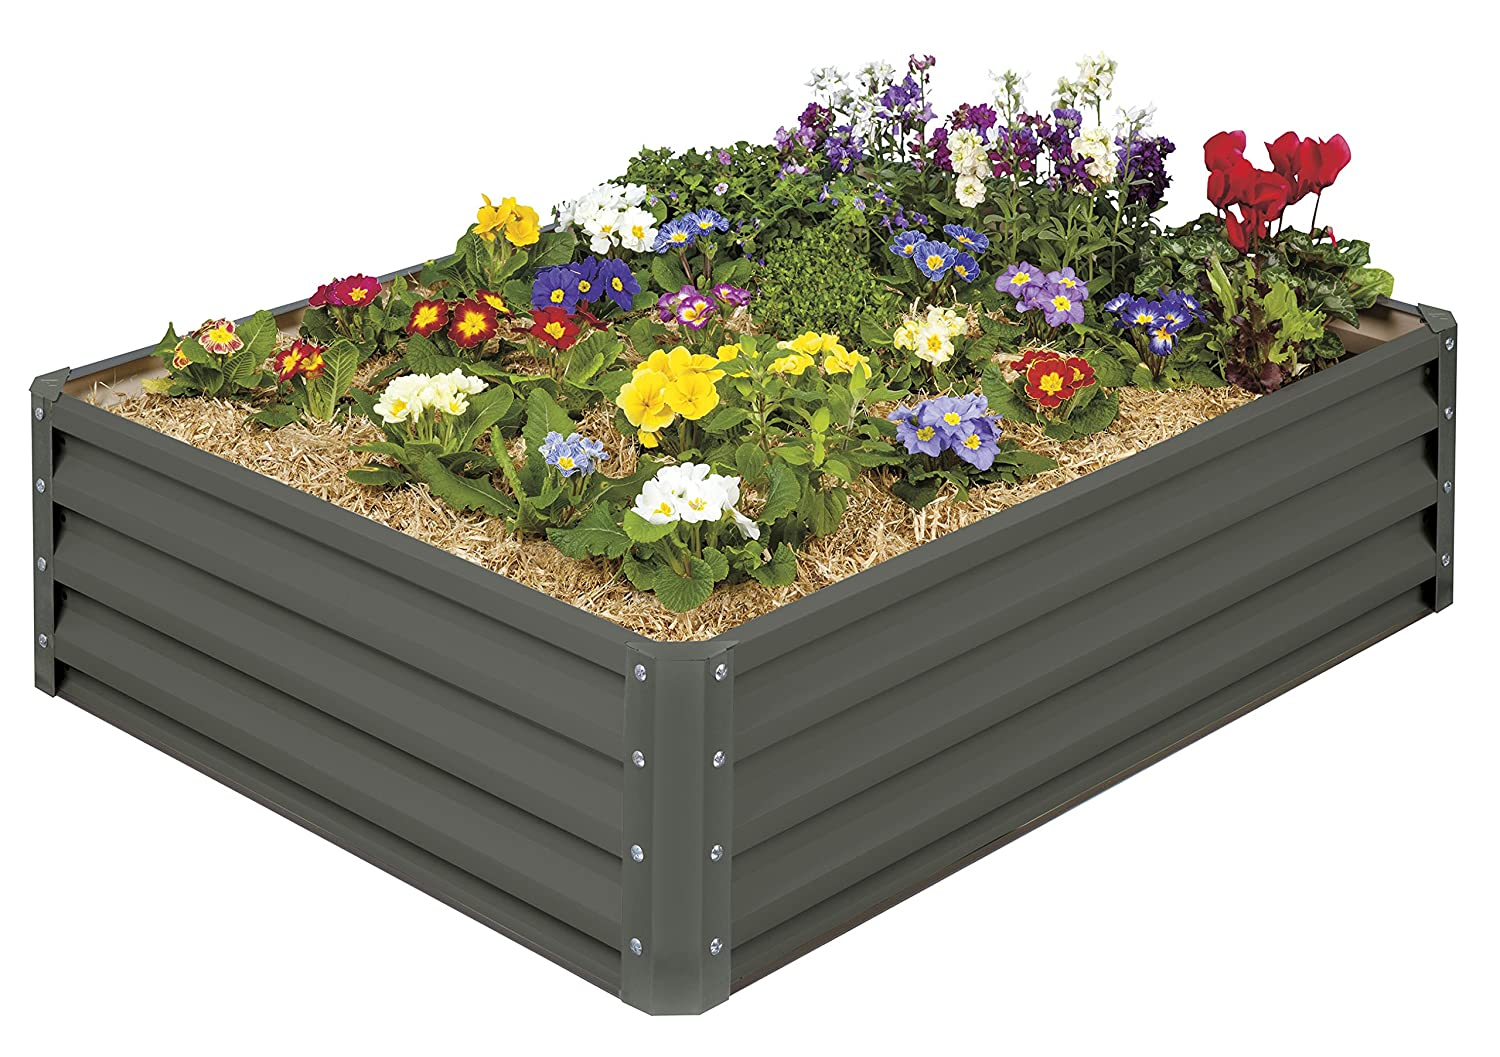 Mr. Stacky High-Grade Metal Raised Garden Bed Kit 3 ft. x 4 ft. x 1 ft. – Elevated Planter Box for Growing Herbs, Vegetables, Greens, Strawberries, Flowers, and Much More 01